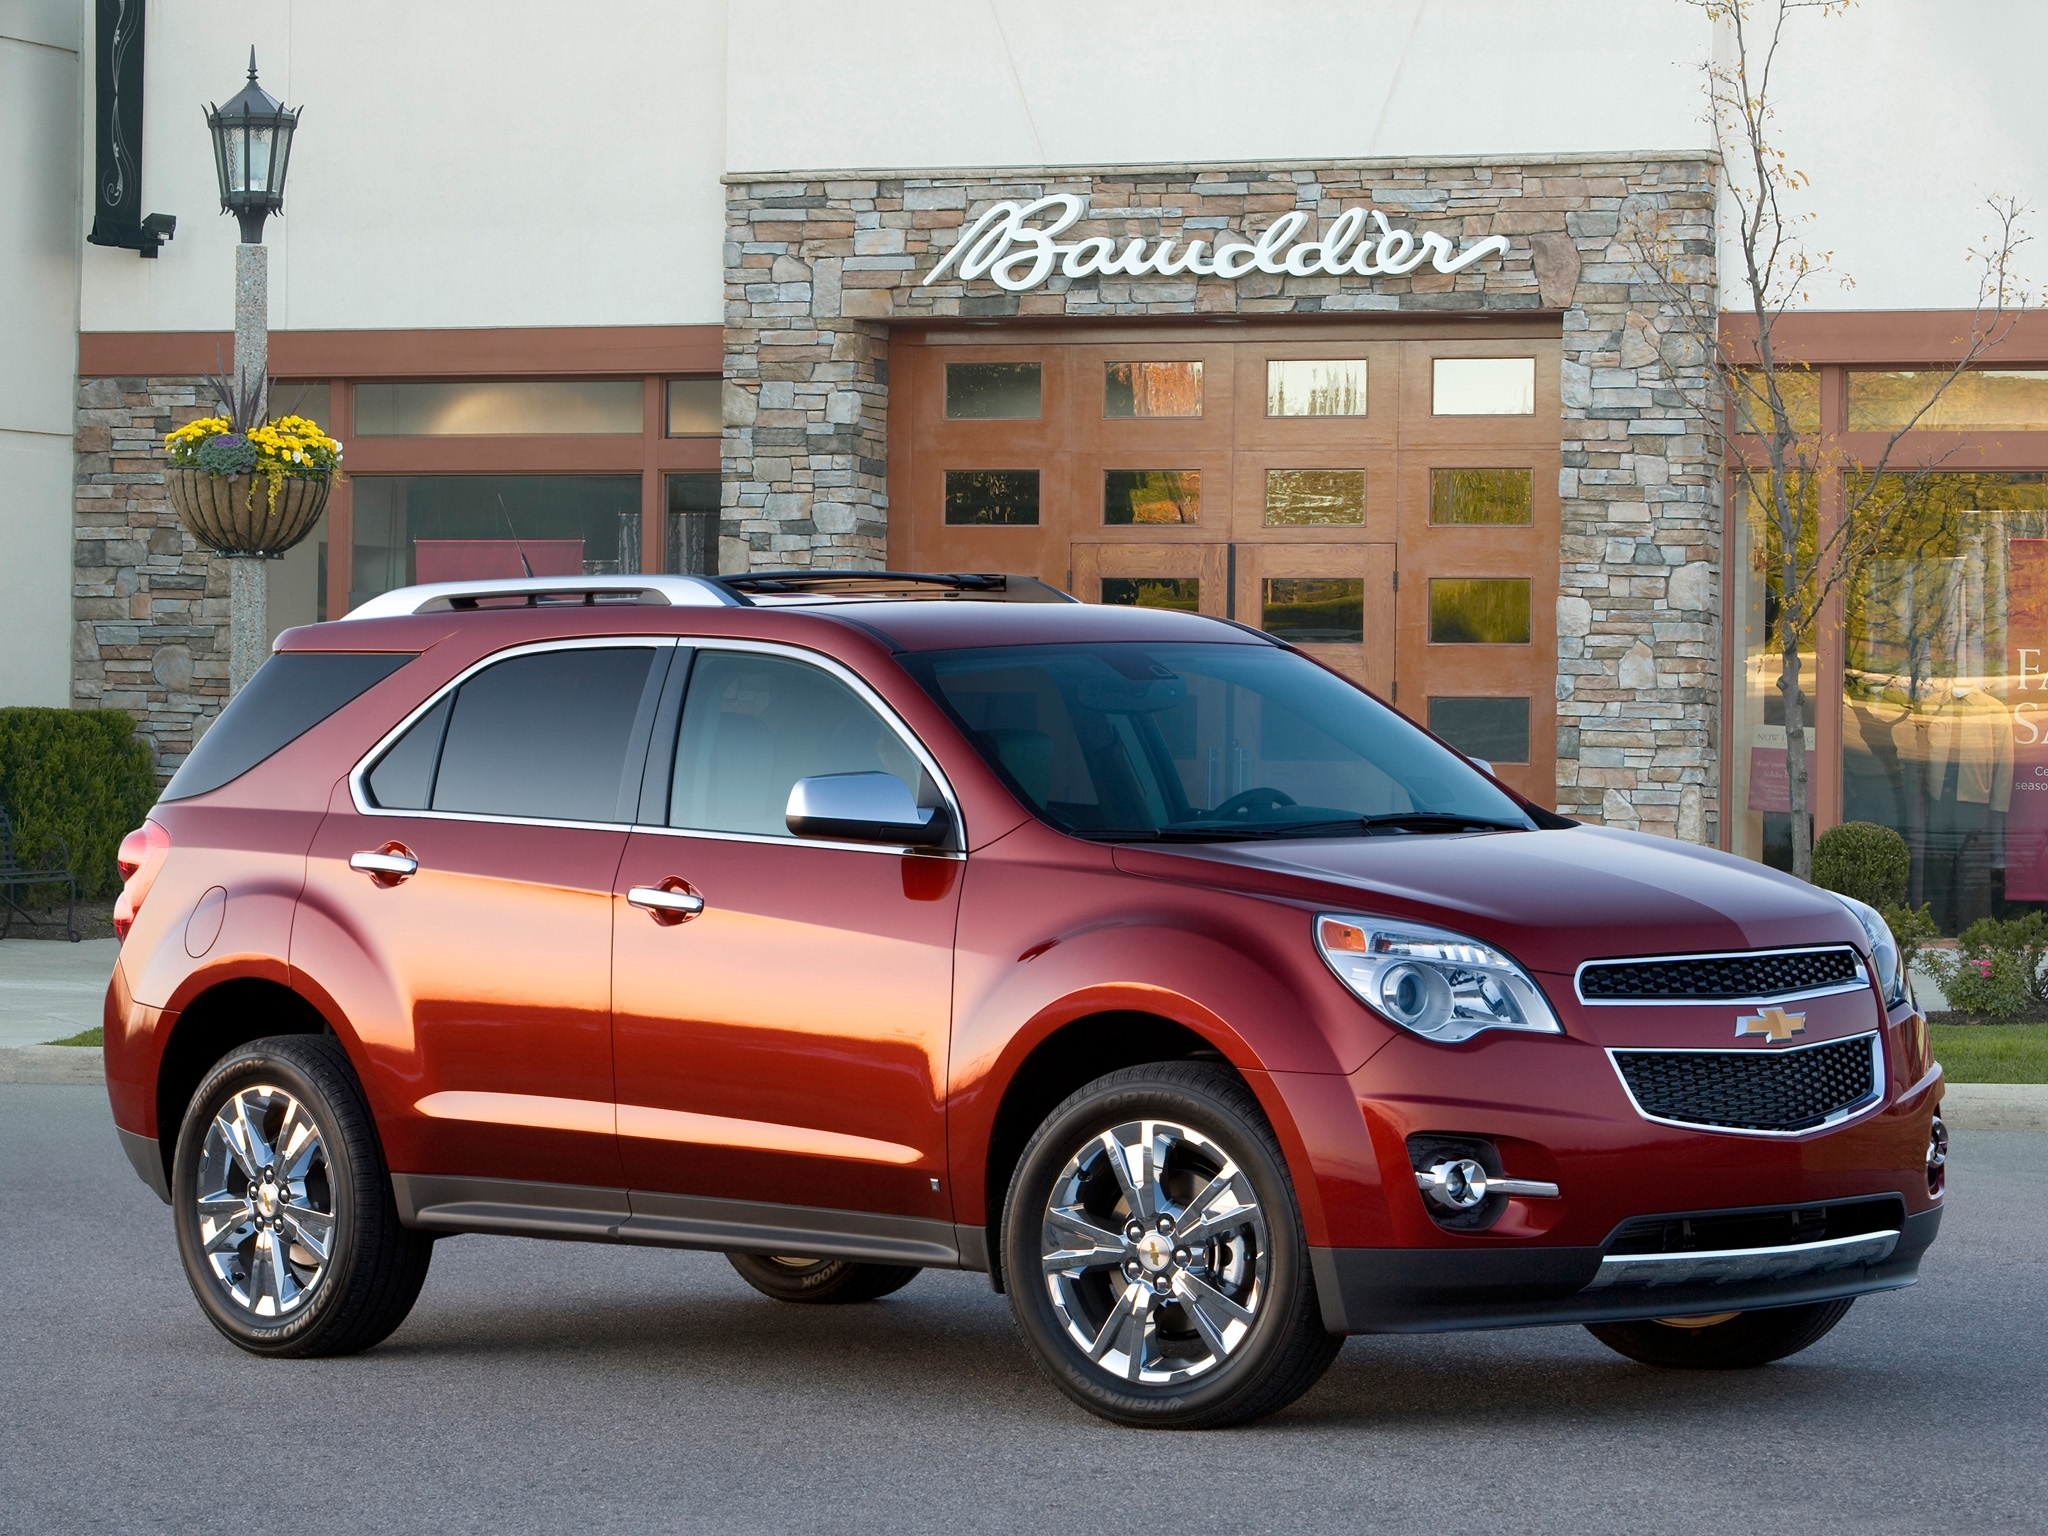 Chevy 2010 equinox owners manual